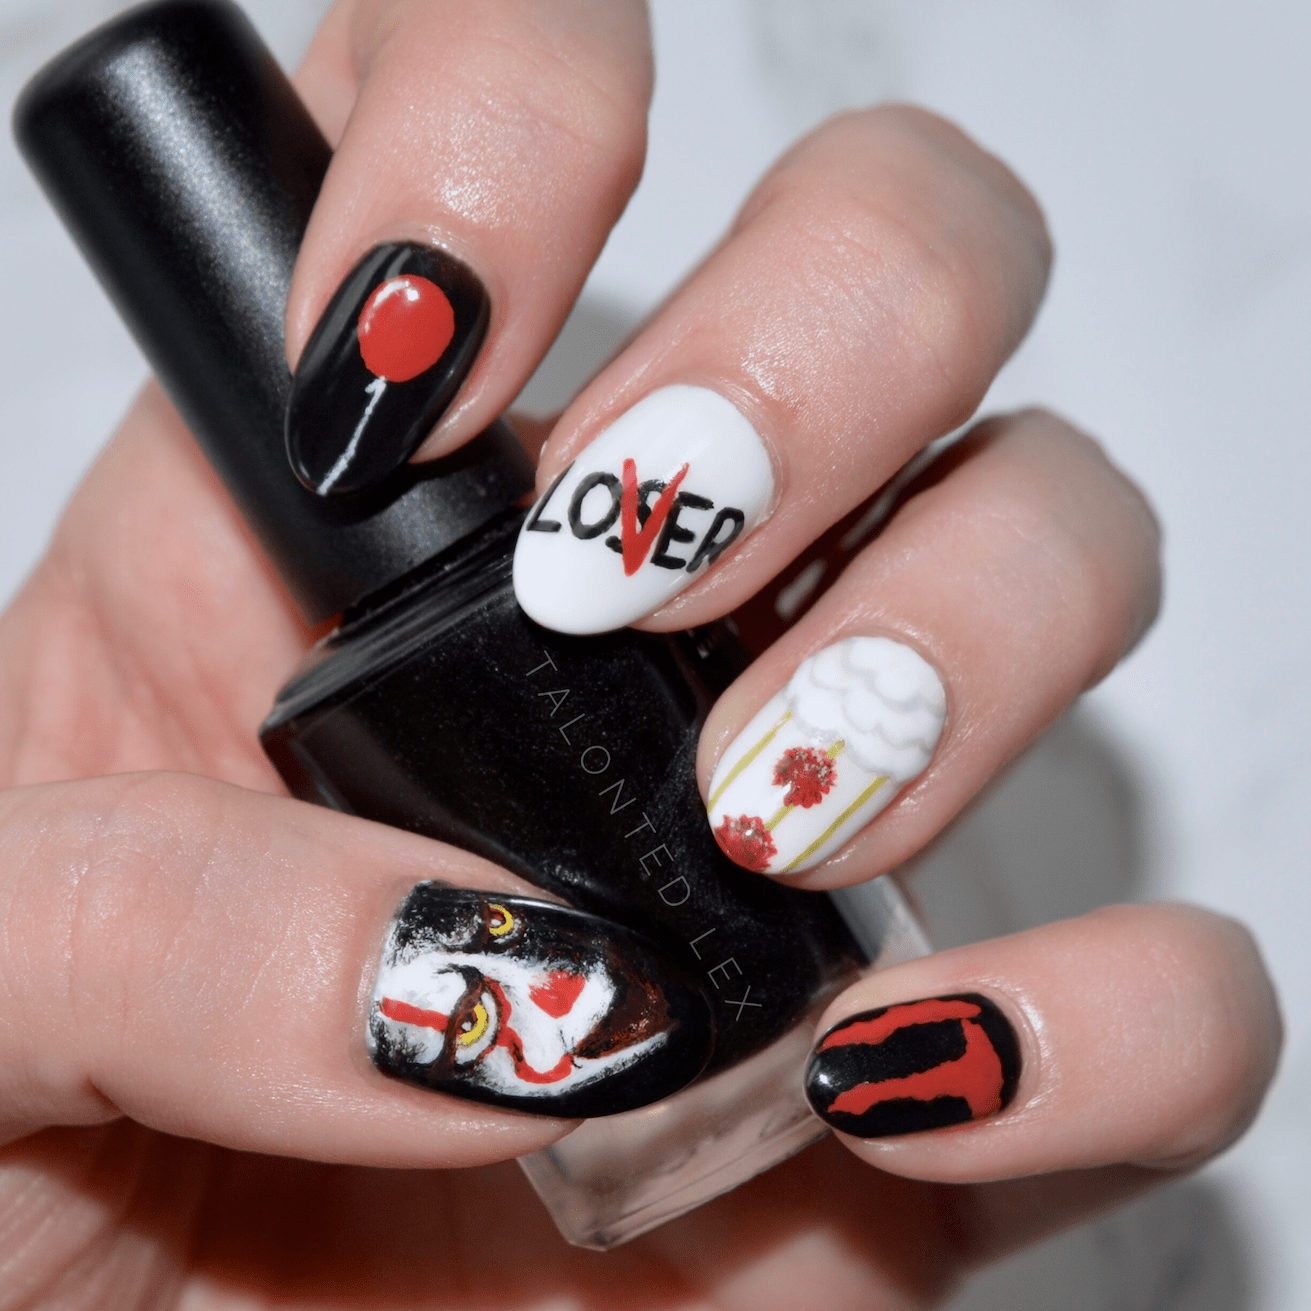 It nail art - hand painted nail art inspired by the new film, 'It'. Pennywise, Stephen King, manicure by Talonted Lex.